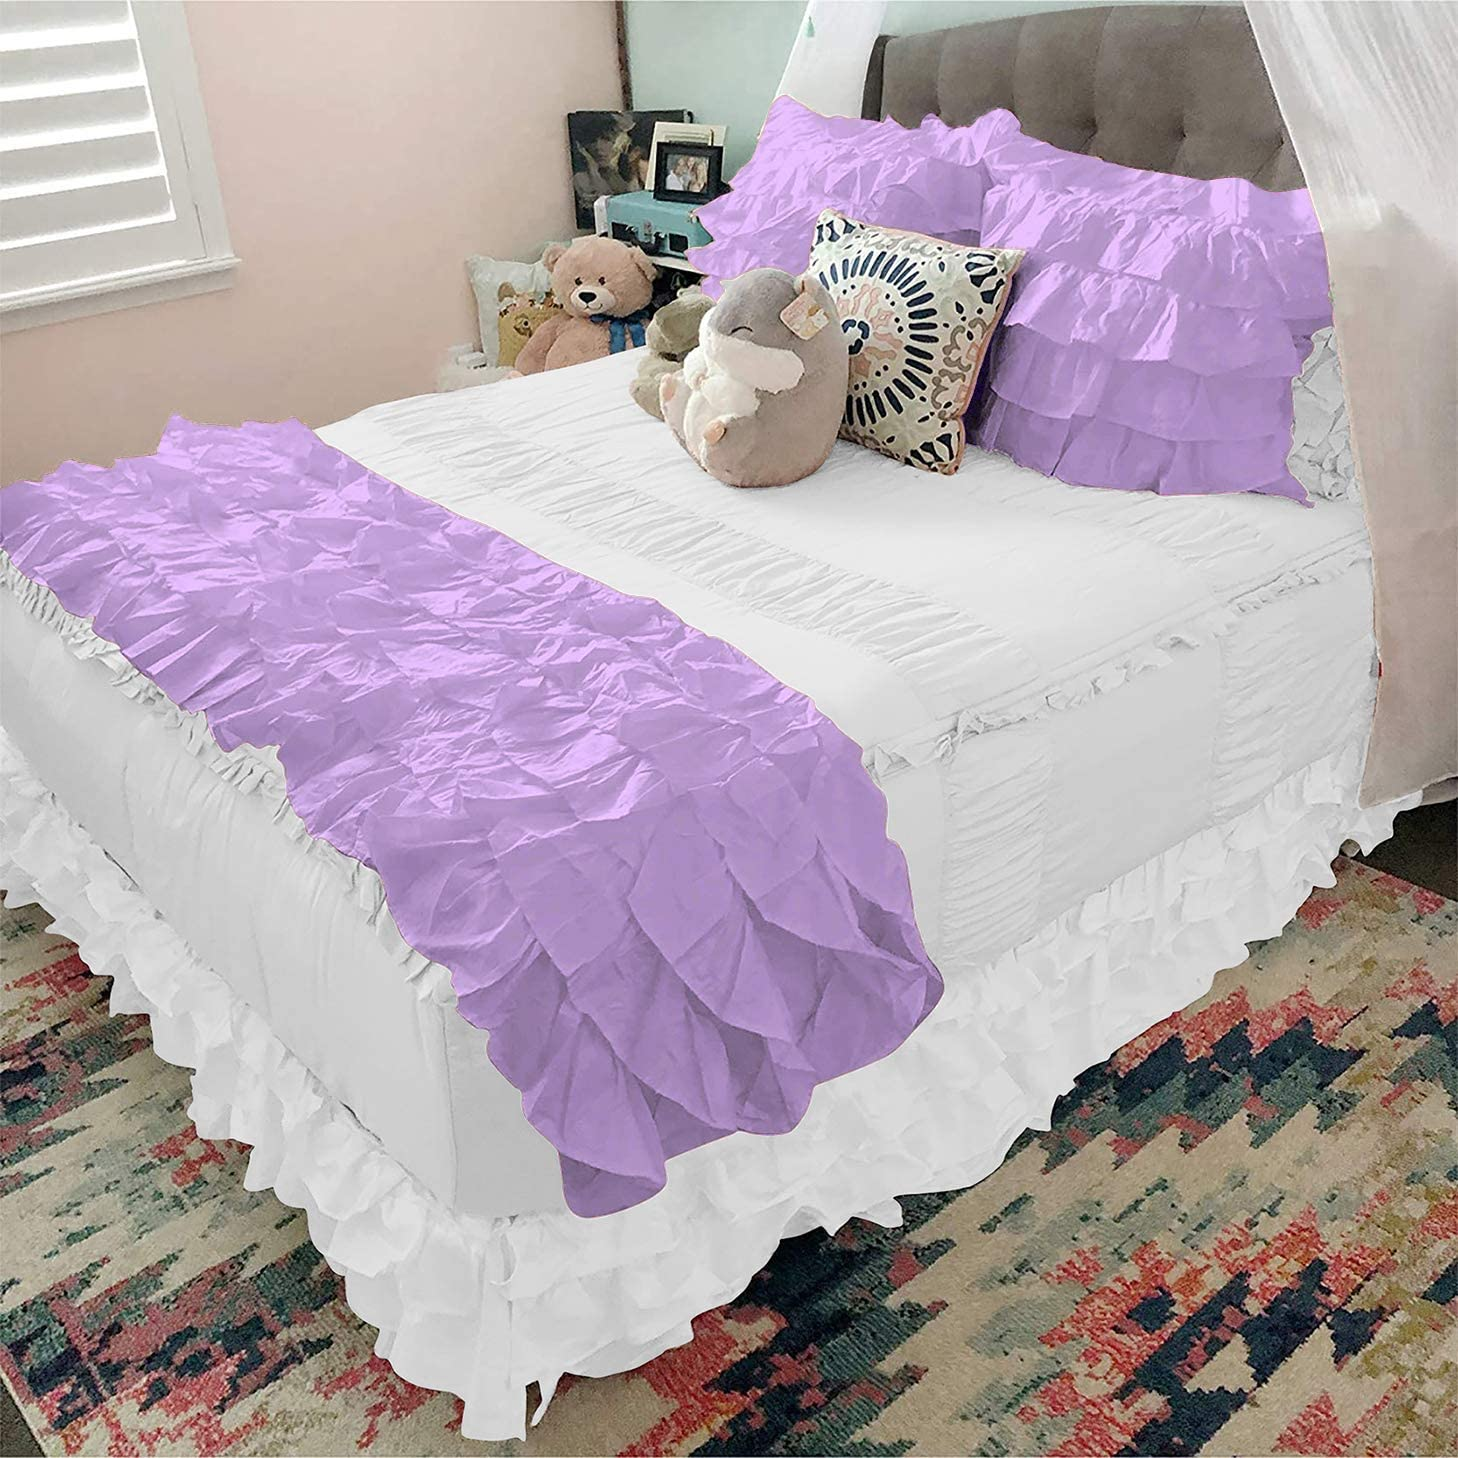 Bedding Castle 800 Thread At the price of surprise Count Ruffle Pieces Dedication Runner 5 Bed with